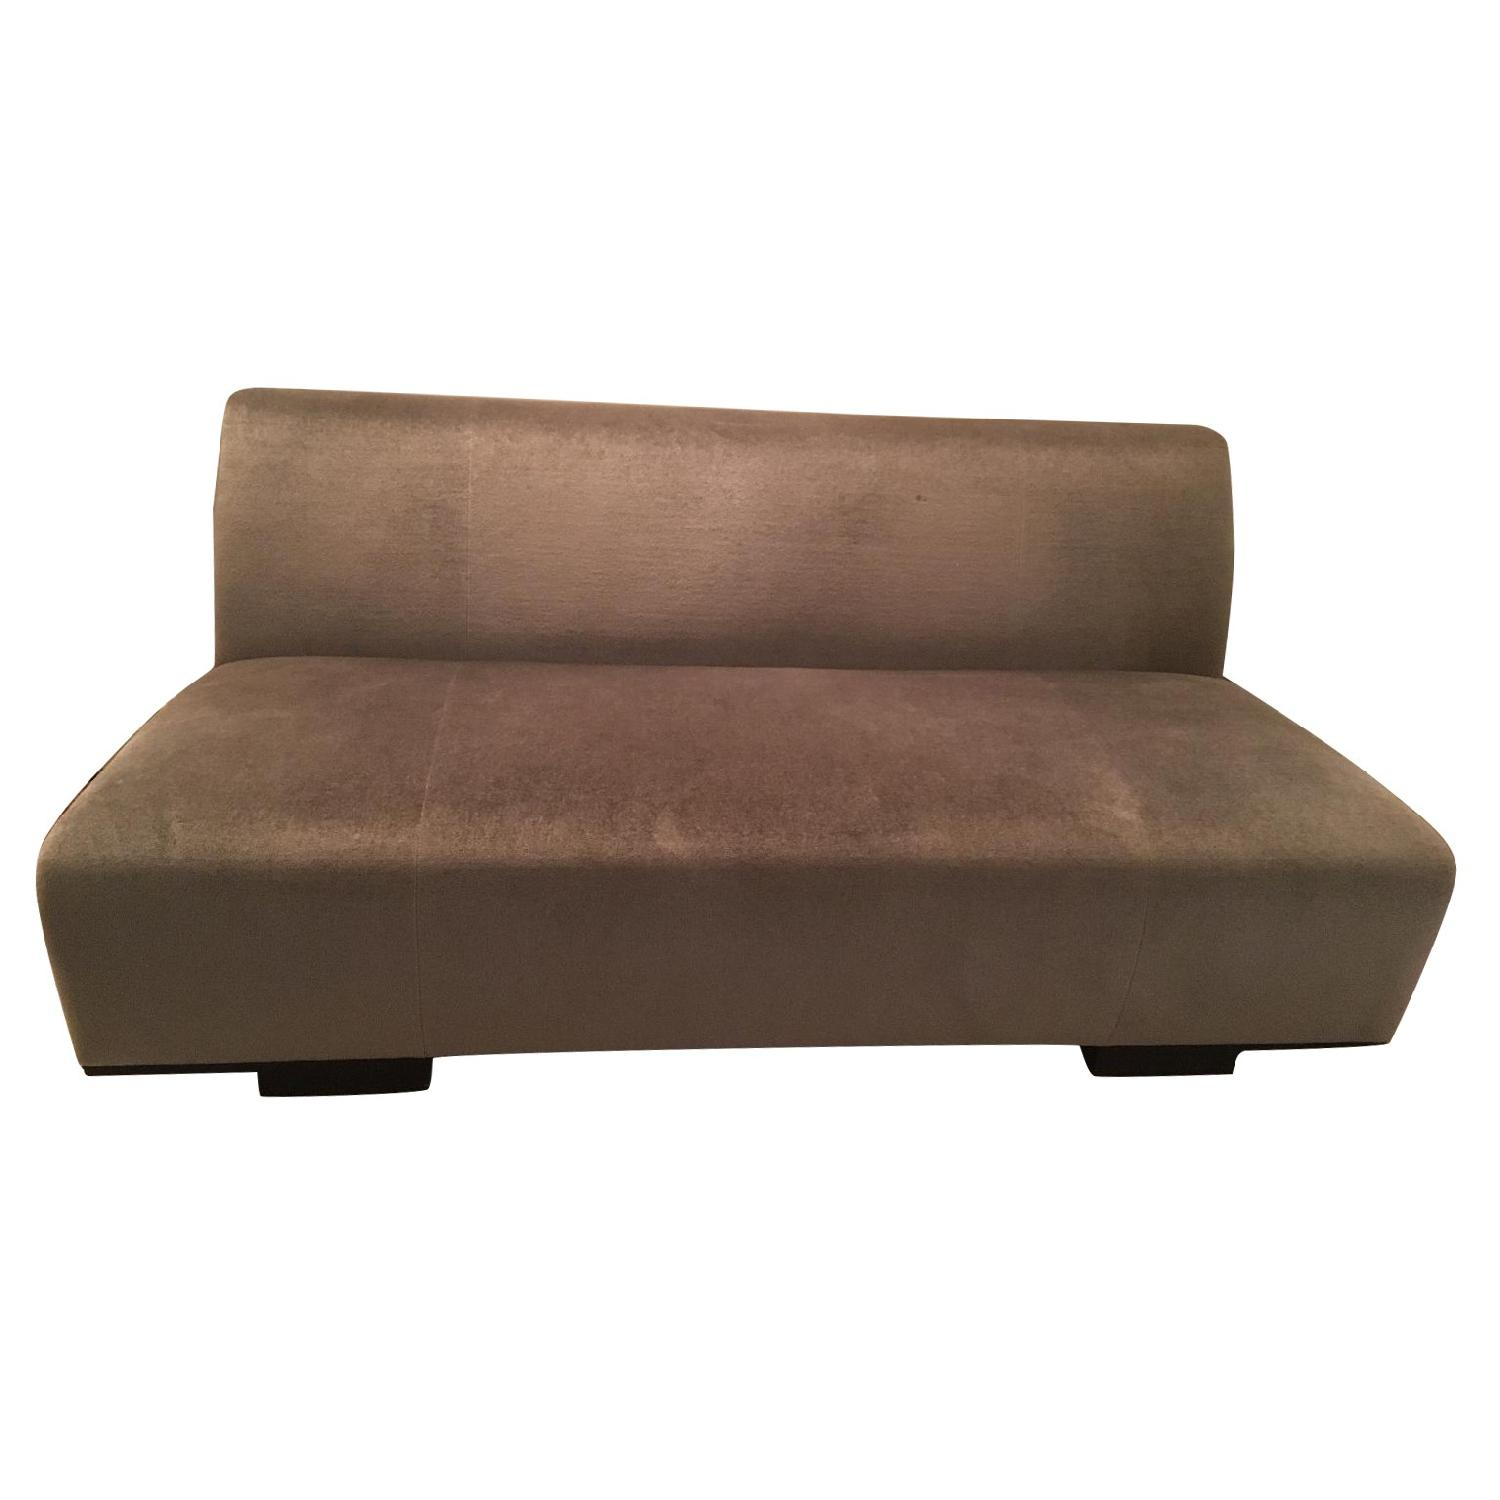 holly hunt sofa cost ciao designs dark gray velvet sectional w nailheads